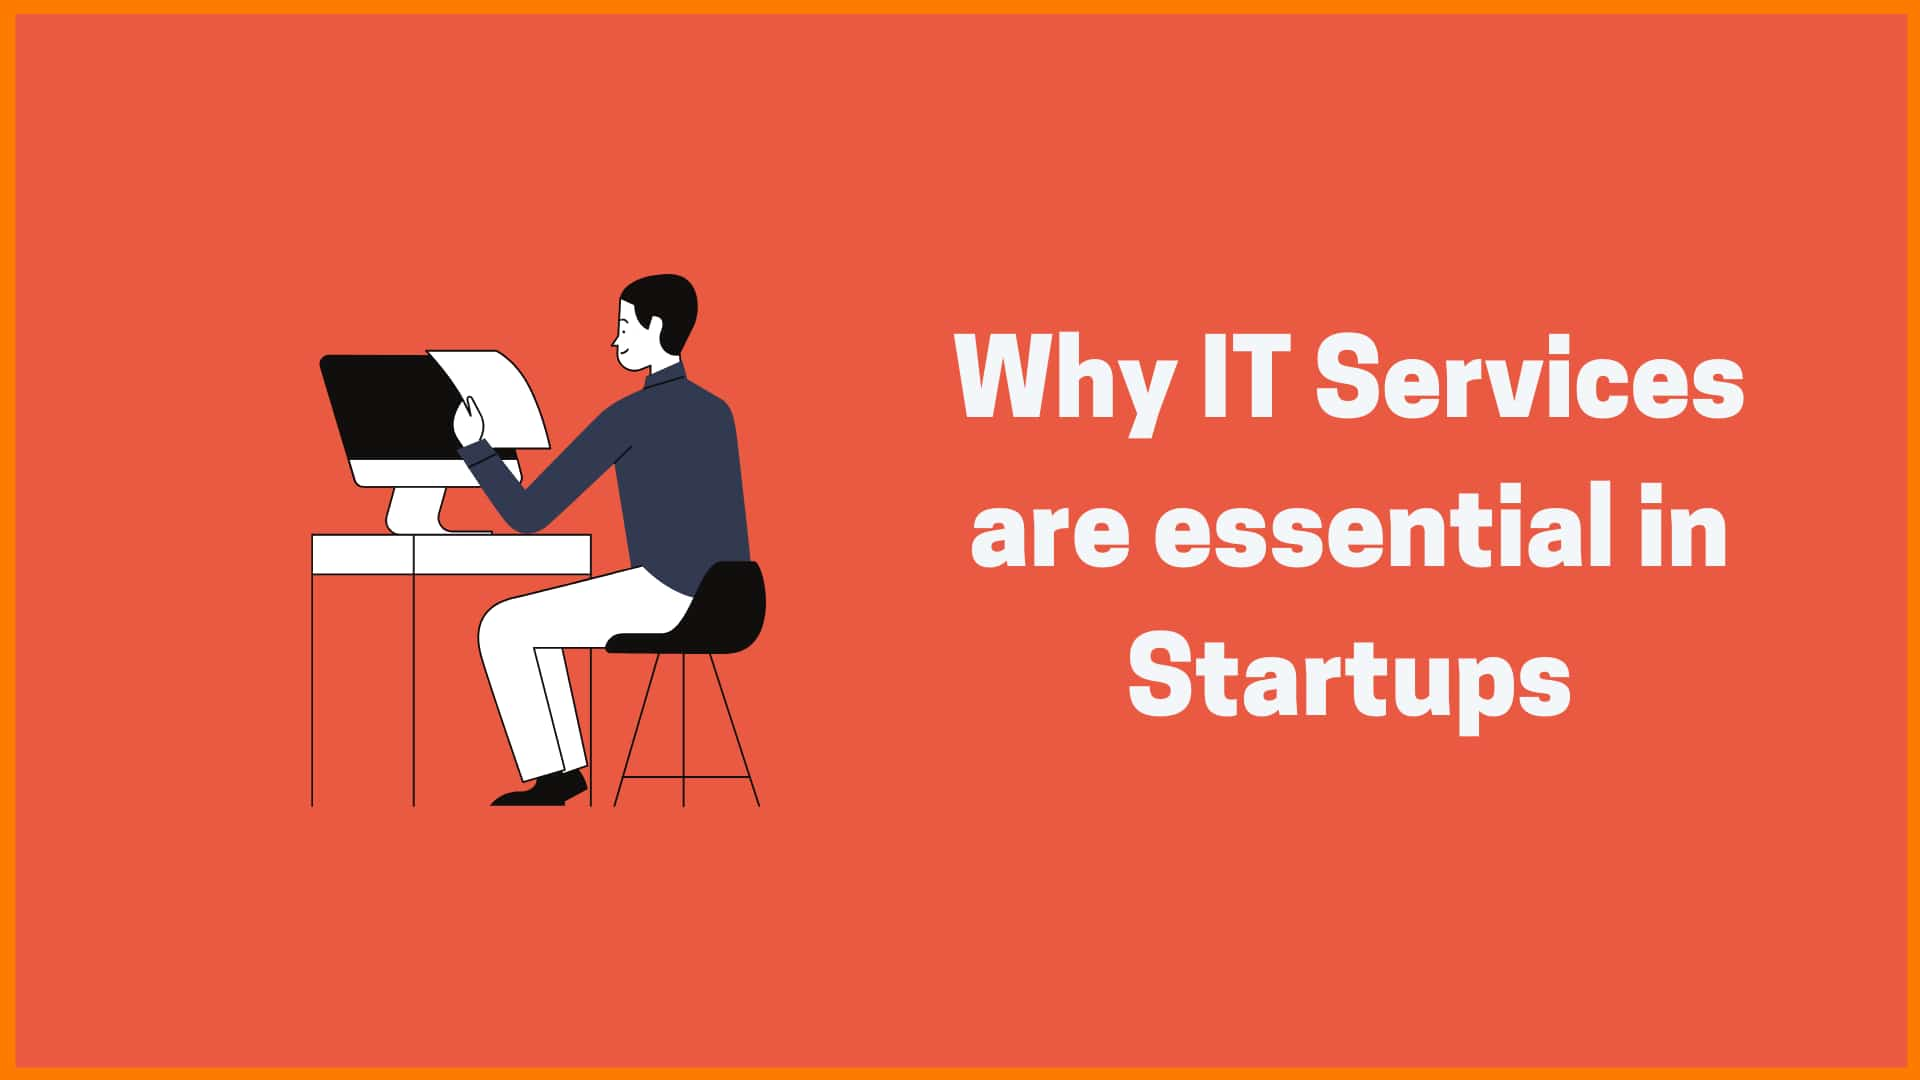 Why IT Services are essential in Startups